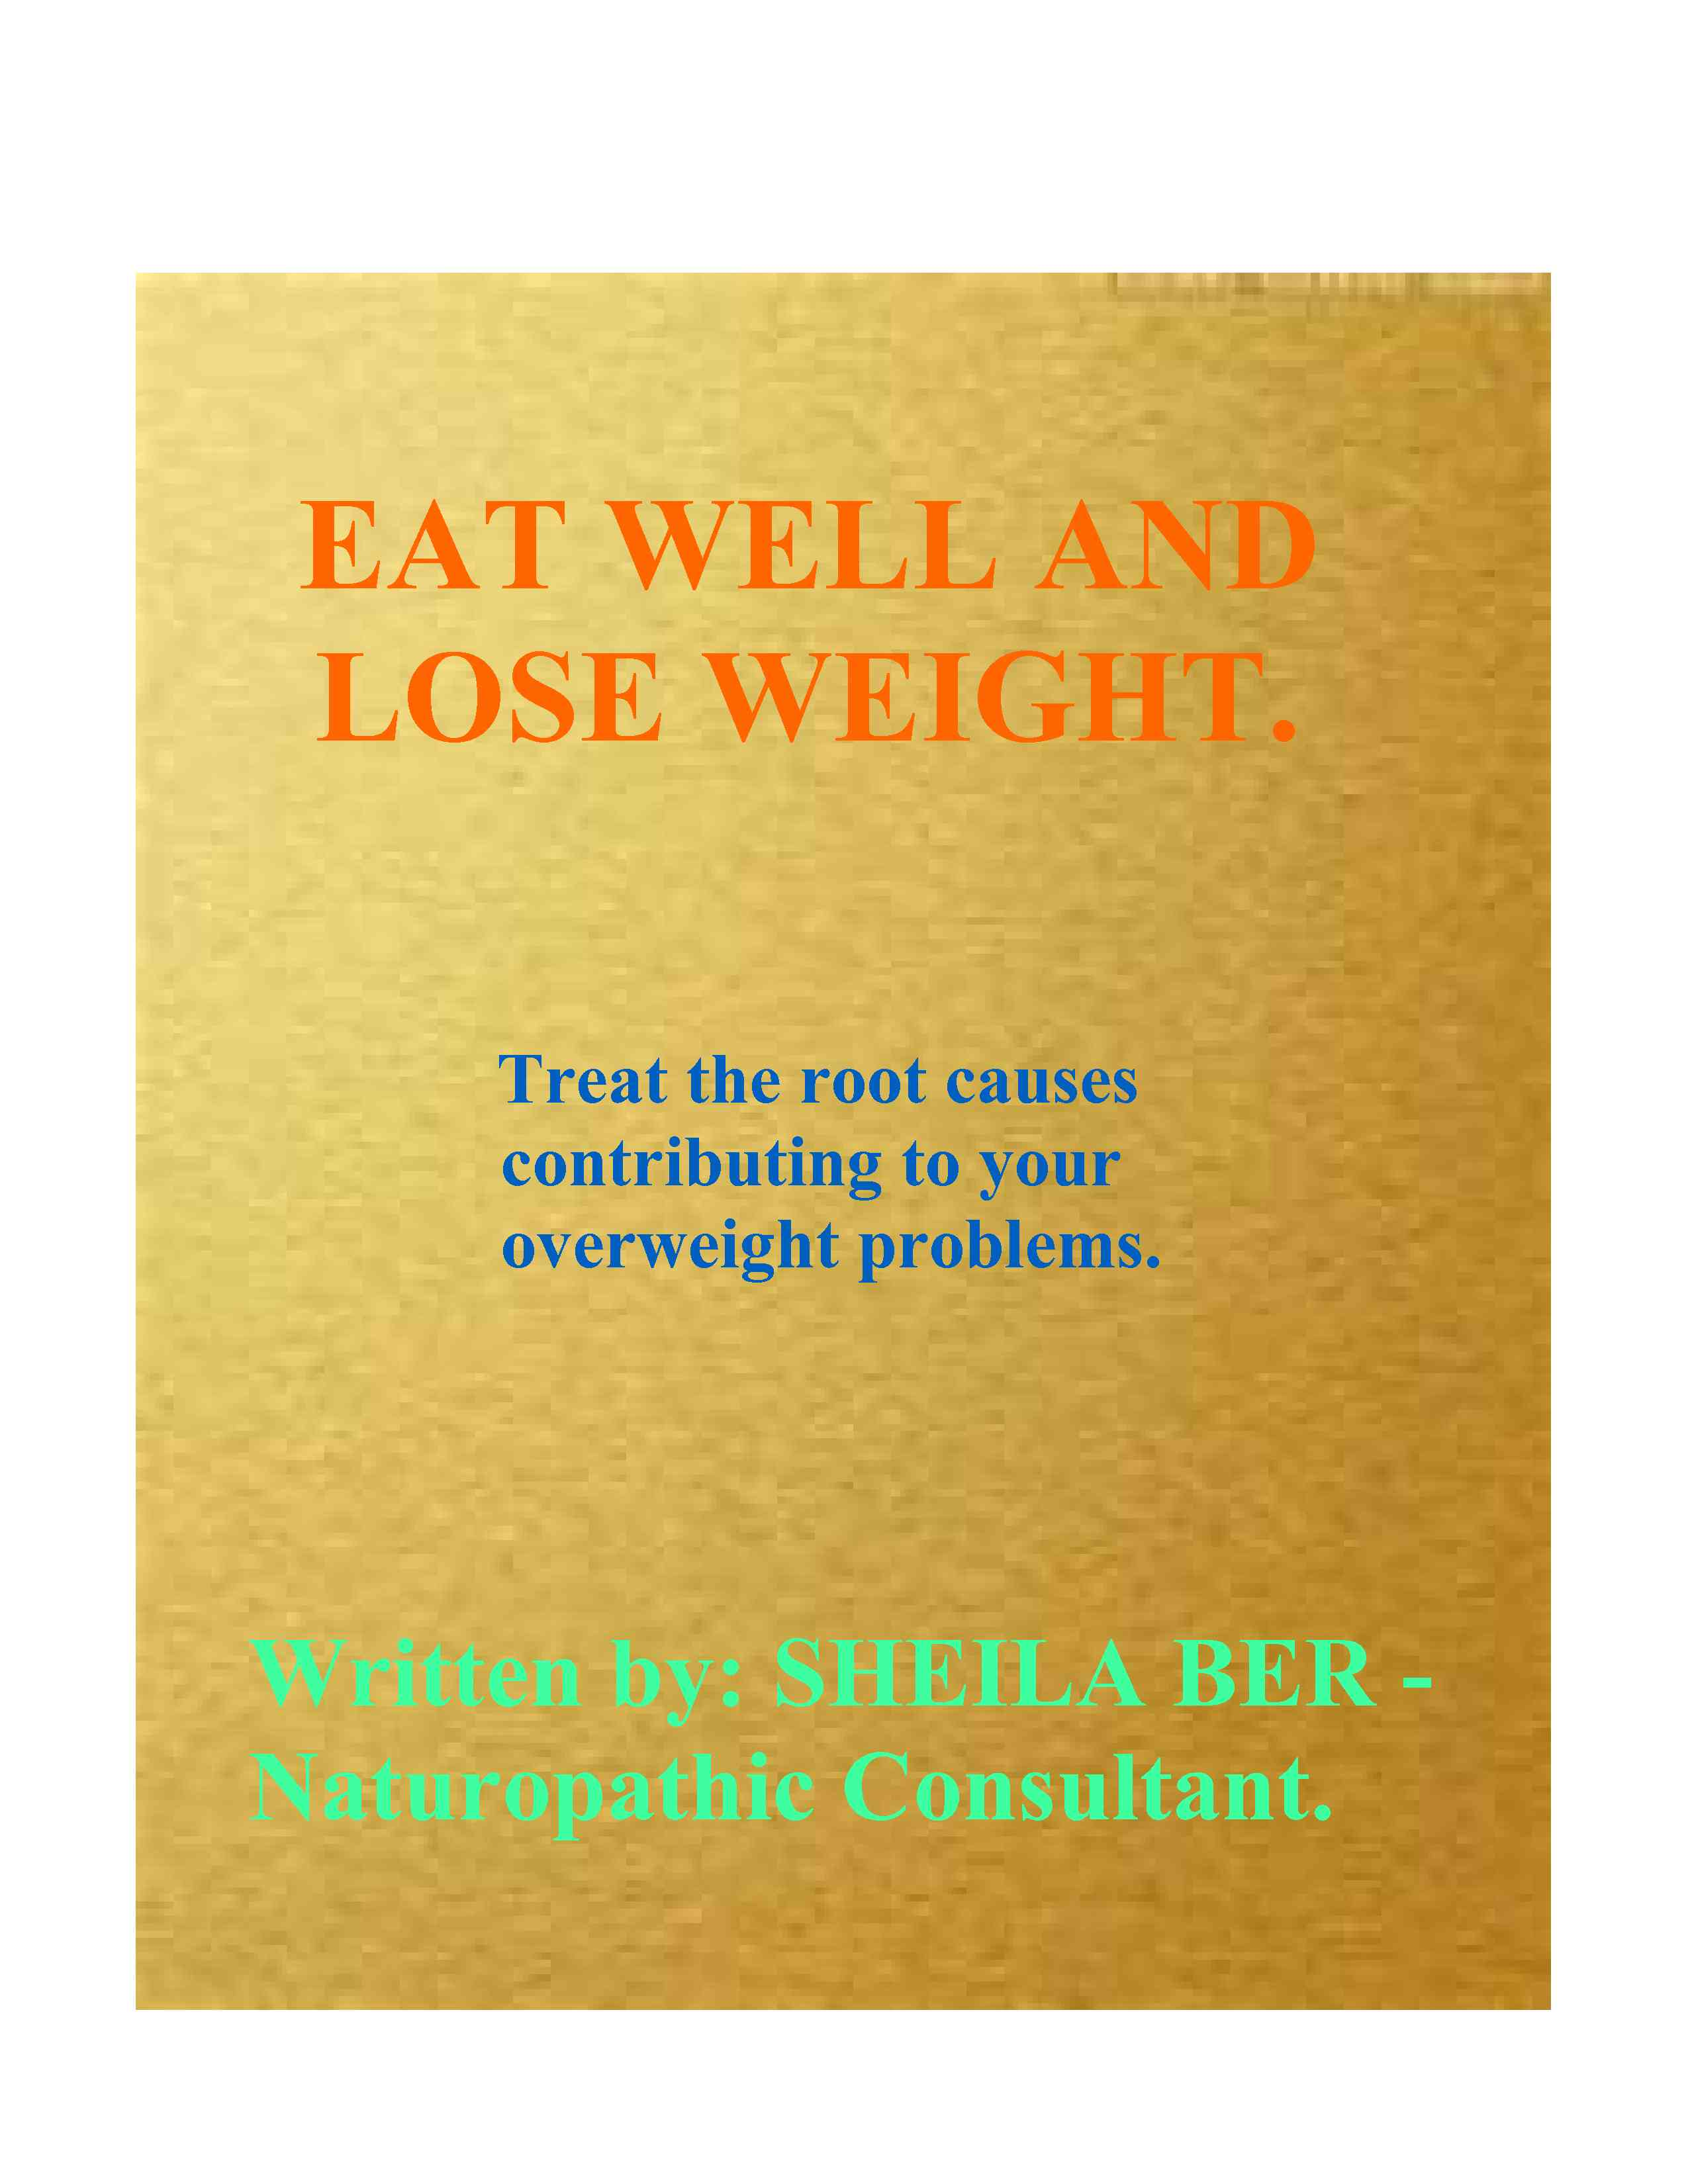 fr-cover-eat-well-and-loss-weight-8397f3d305091f94c70aae0964c6a9dbec4b6b87